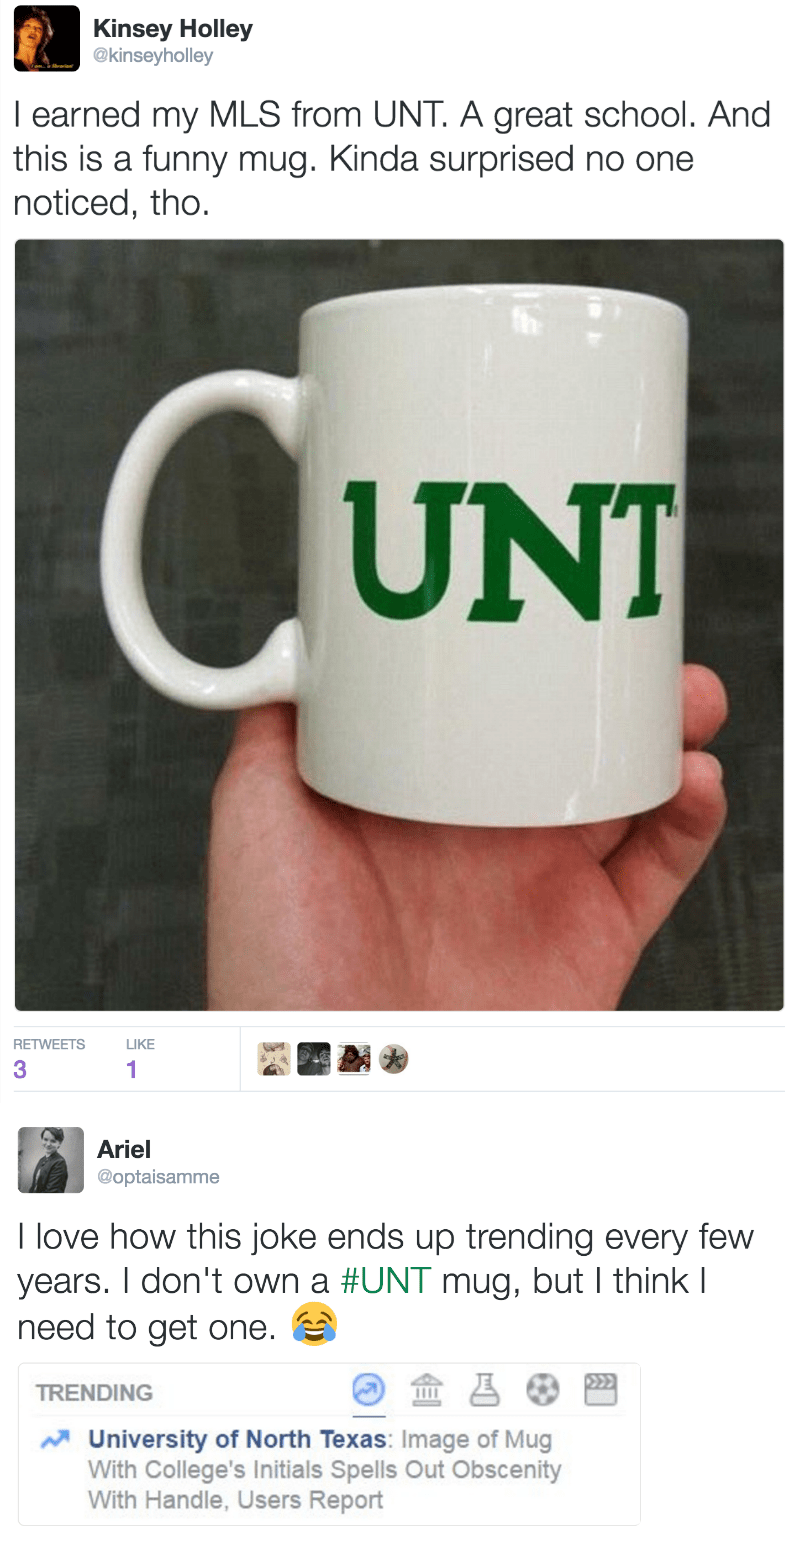 funny fail image University of North Texas C-U-N-T mug